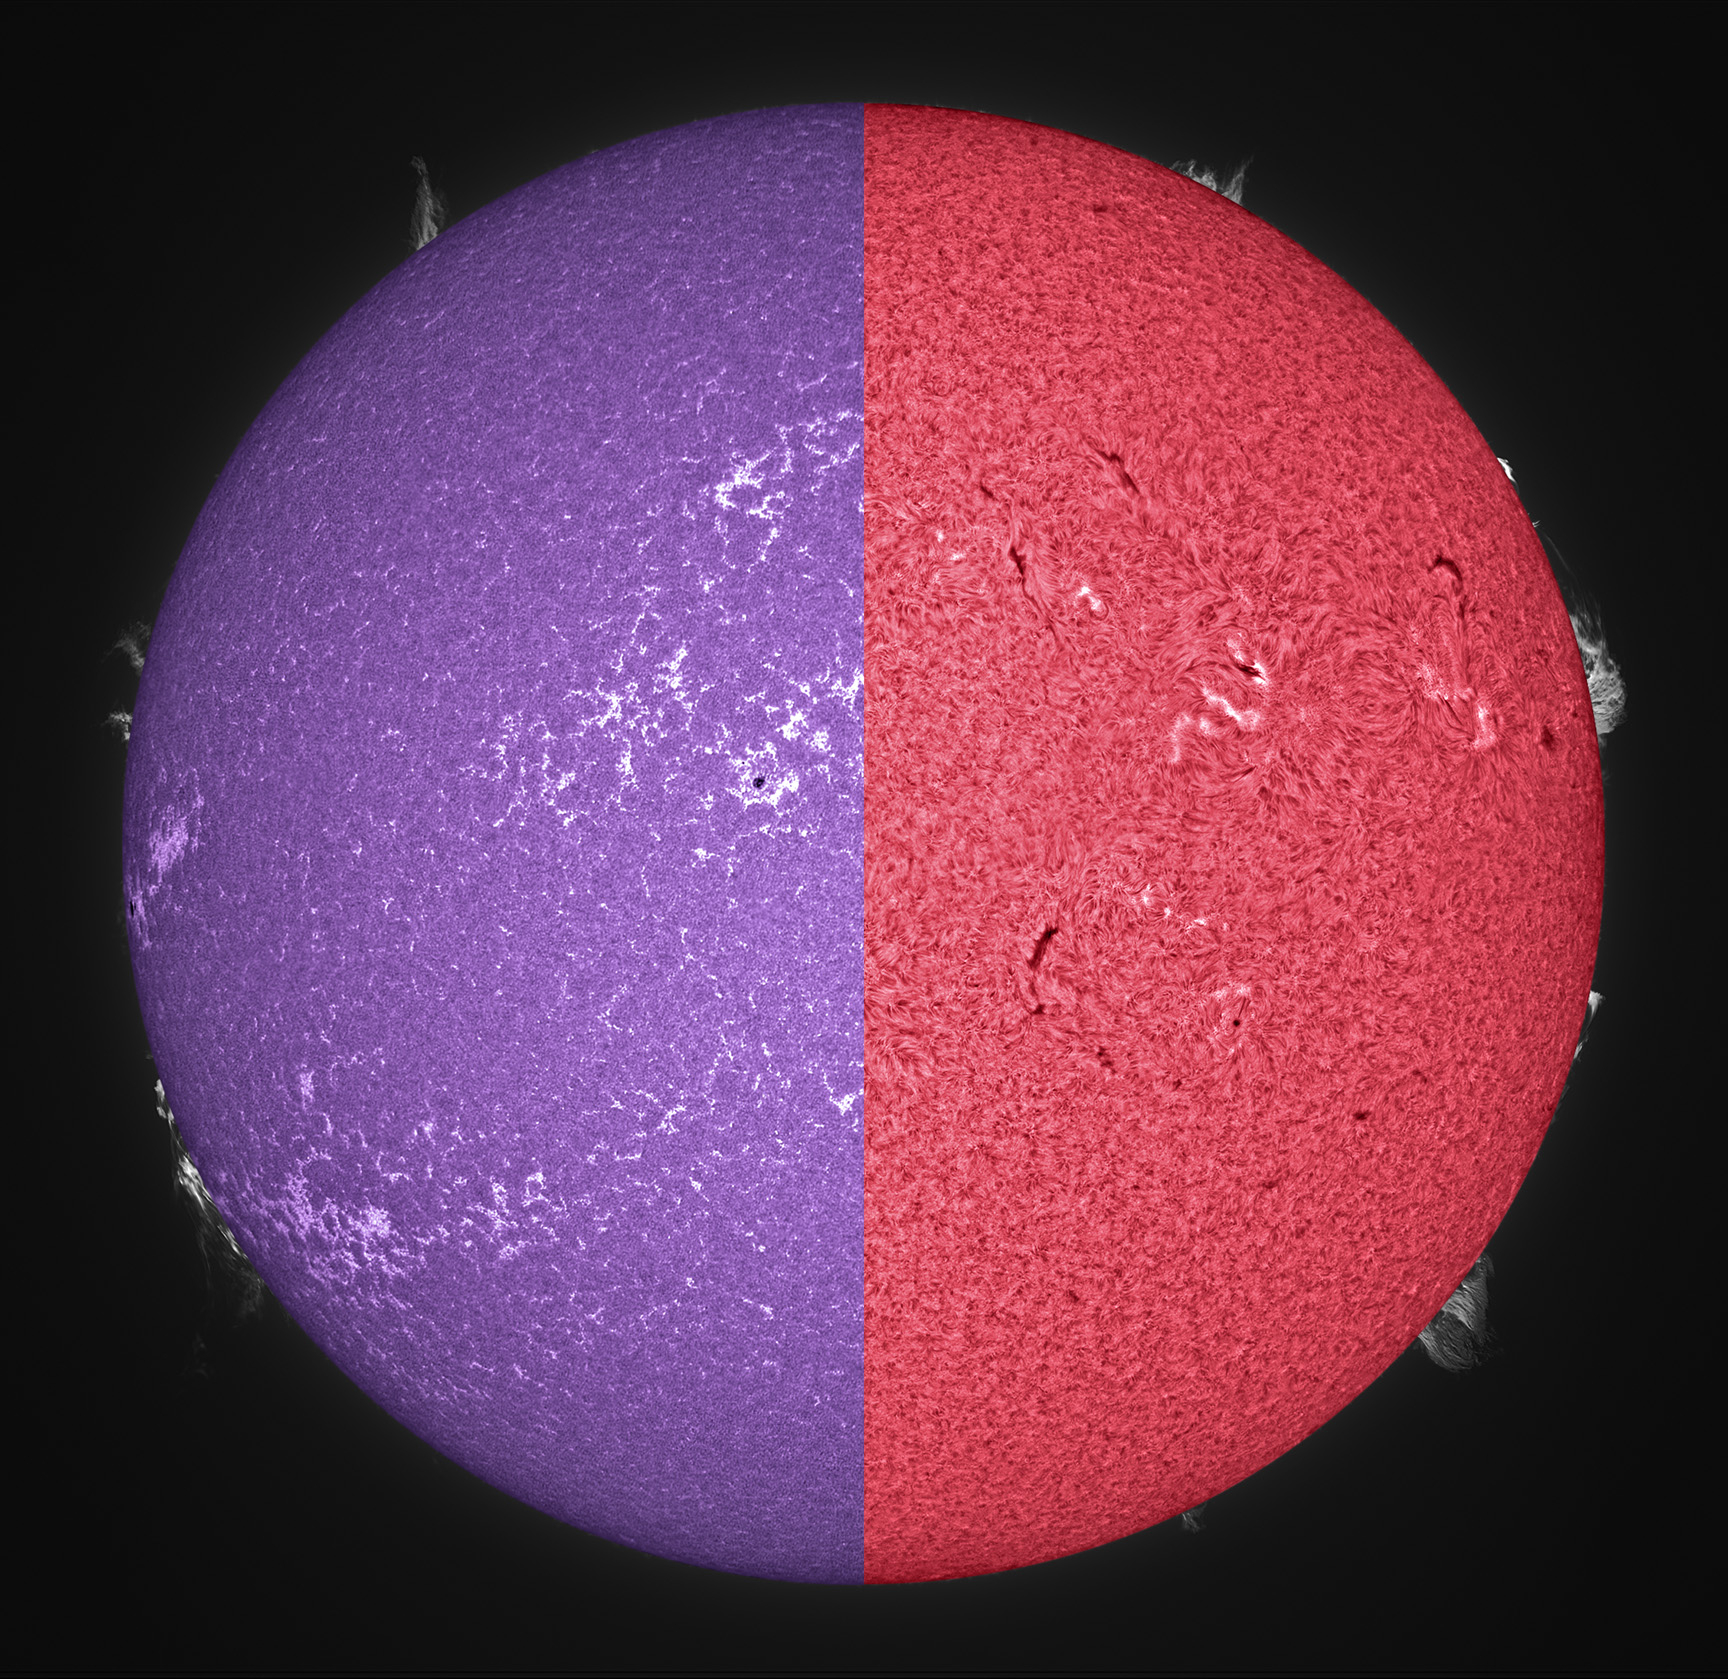 The Sun as seen through calcium K (blue) and hydrogen alpha (red) filters (image courtesy Alan Friedman)